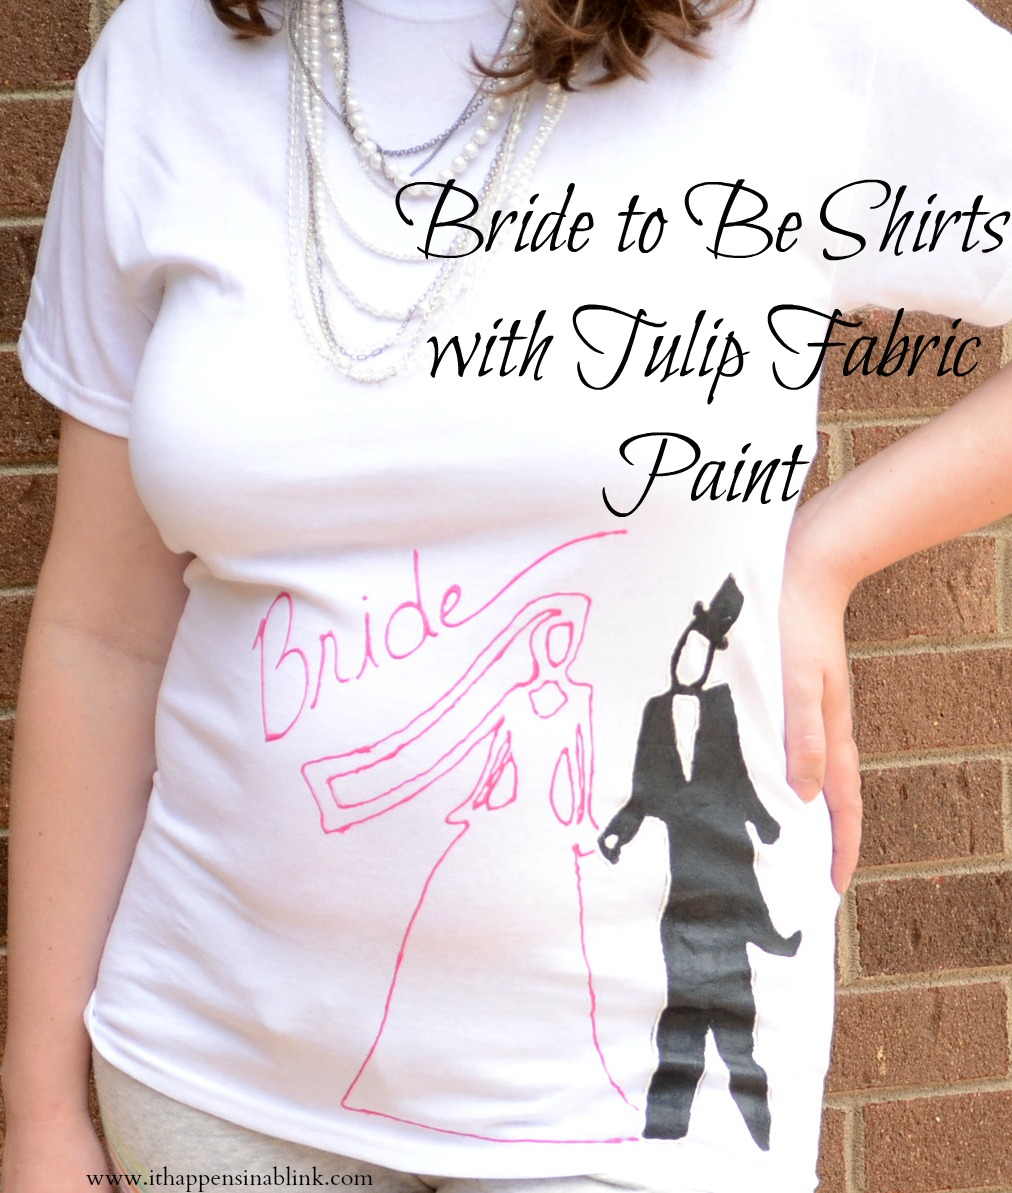 Bride to Be Shirt with It Happens in a Blink